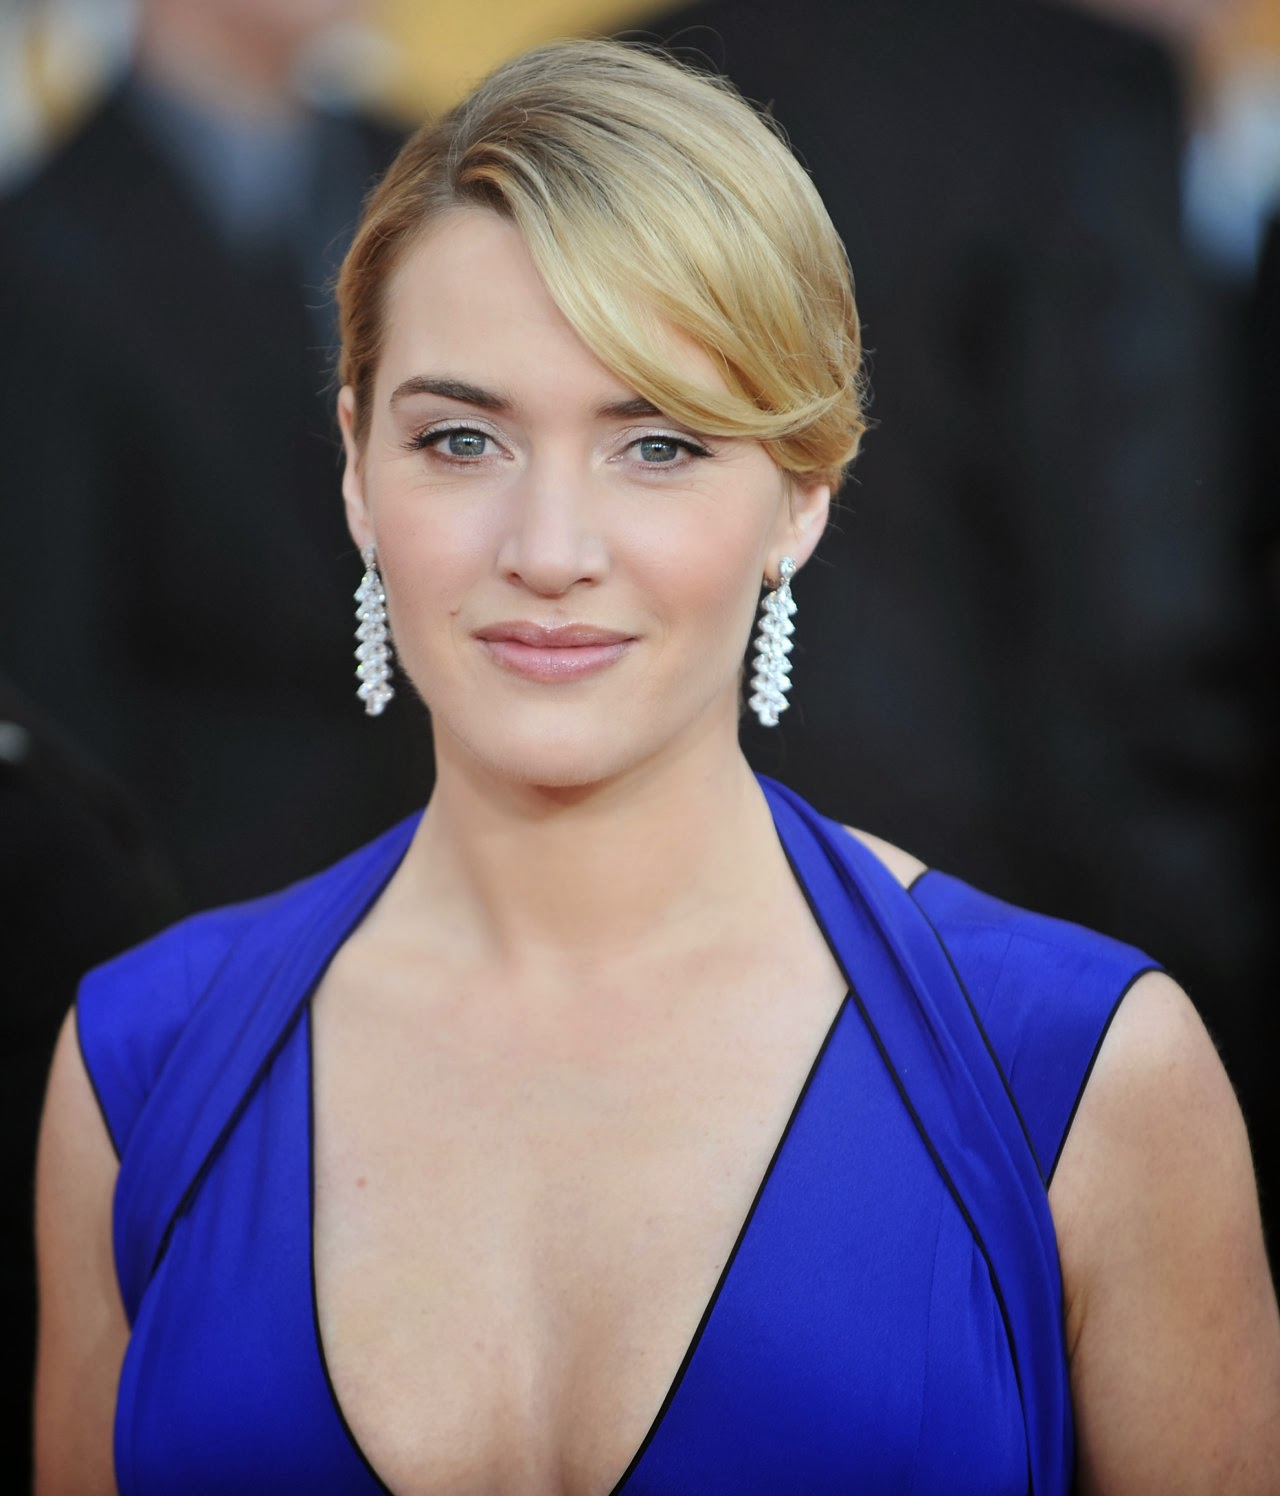 Top Celebrity: Kate Winslet who is? Kate Winslet